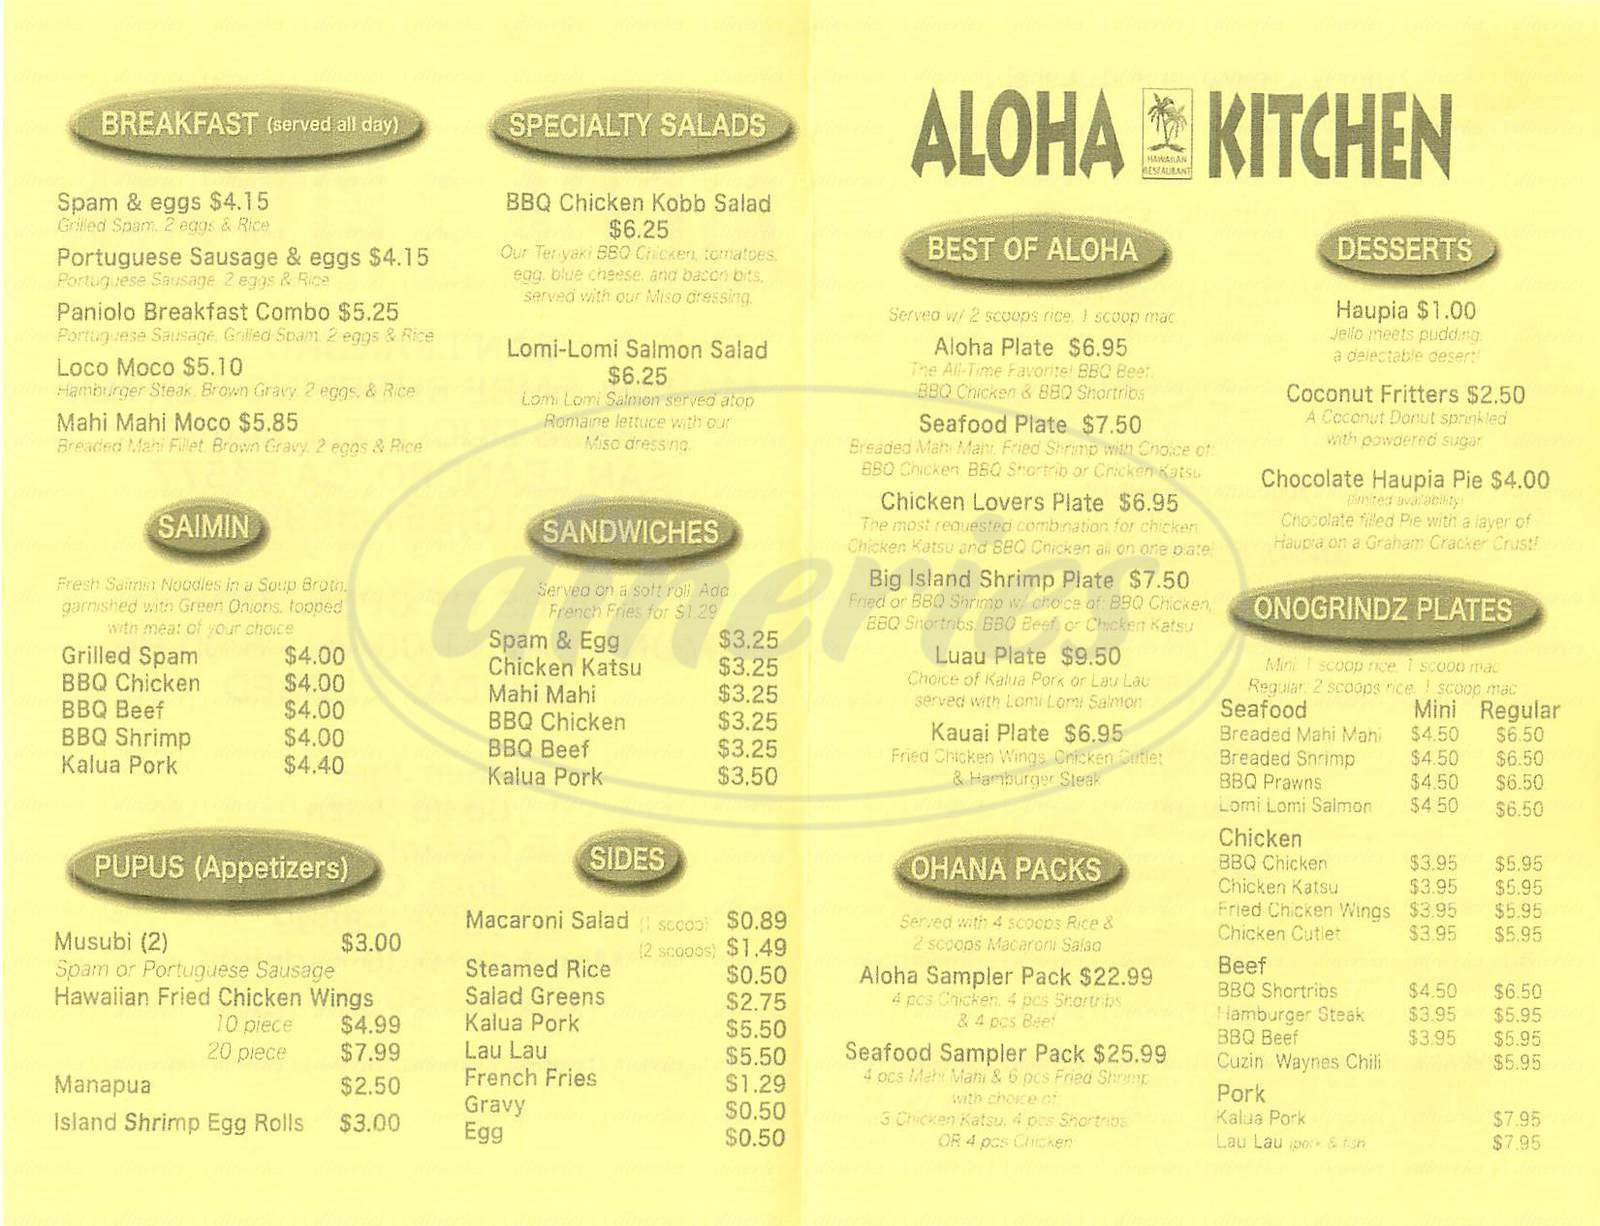 Aloha Kitchen Menu Prices